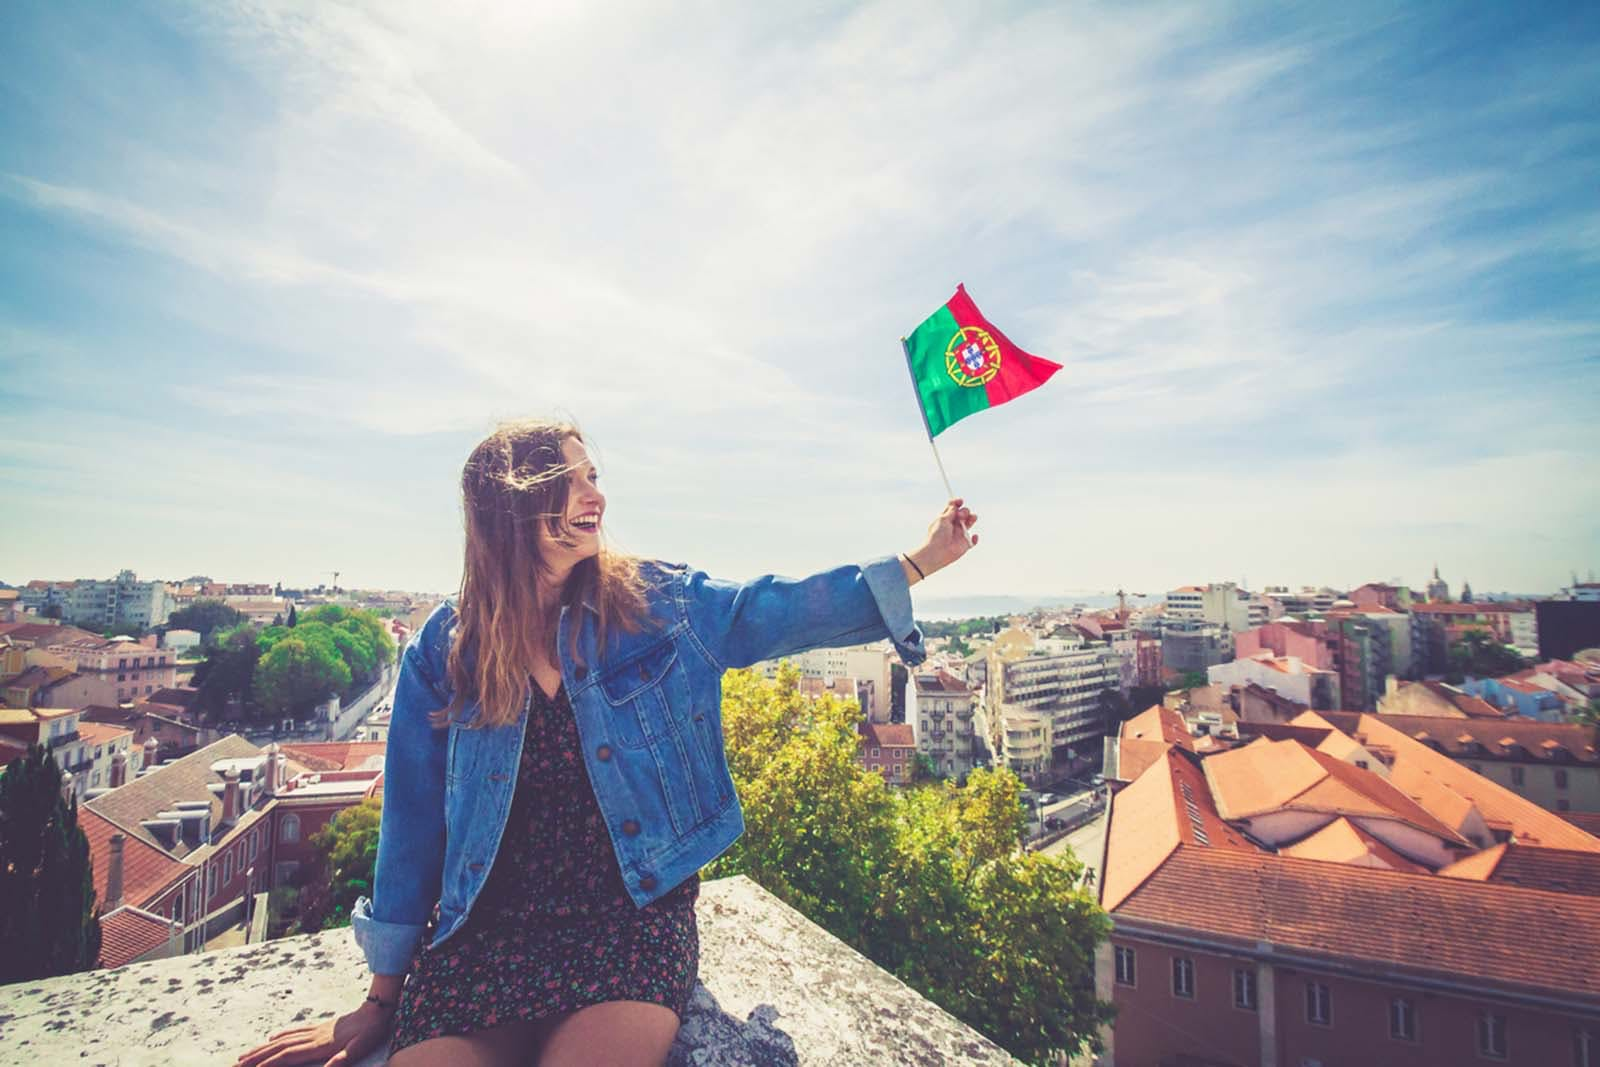 Woman holding up a small Portuguese flag during Portugal Day celebrations.